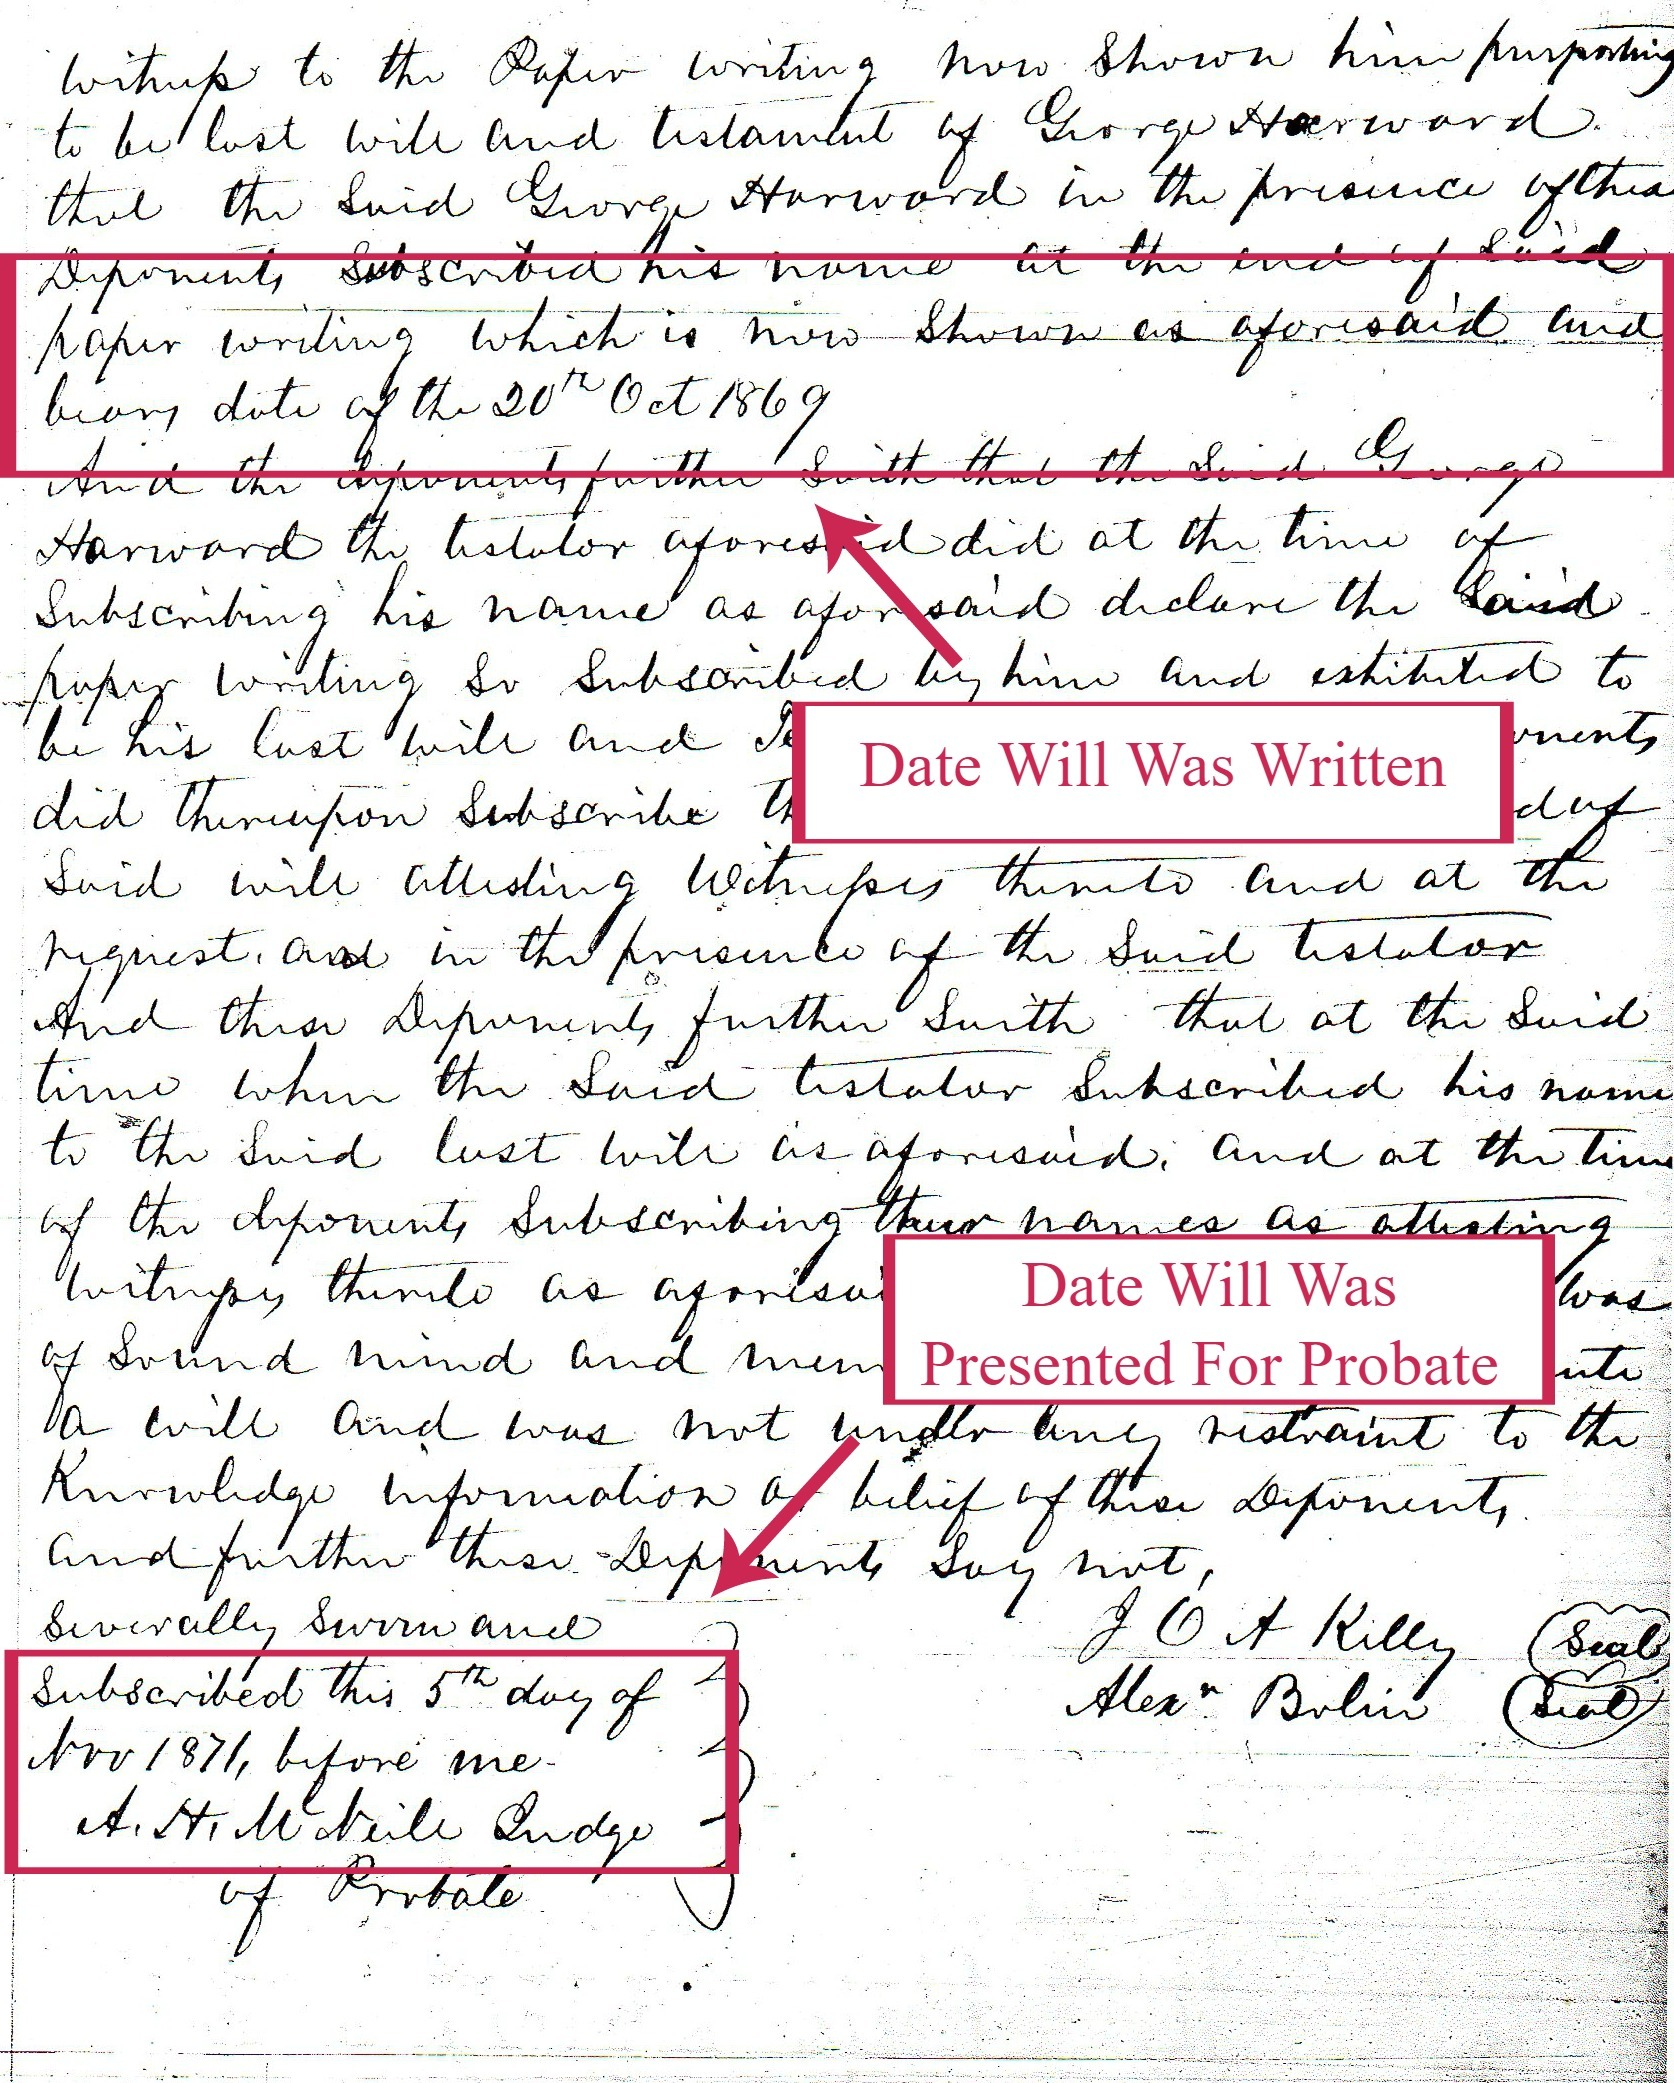 """How do I find my ancestor's death date?"" is one of the most common questions I hear. And, why not? Death Certificates are a fairly modern occurrence, but most of our ancestors did not live in a time period when death certificates were generated. Fortunately, as researchers we can determine an ancestor's date of death using other resources."